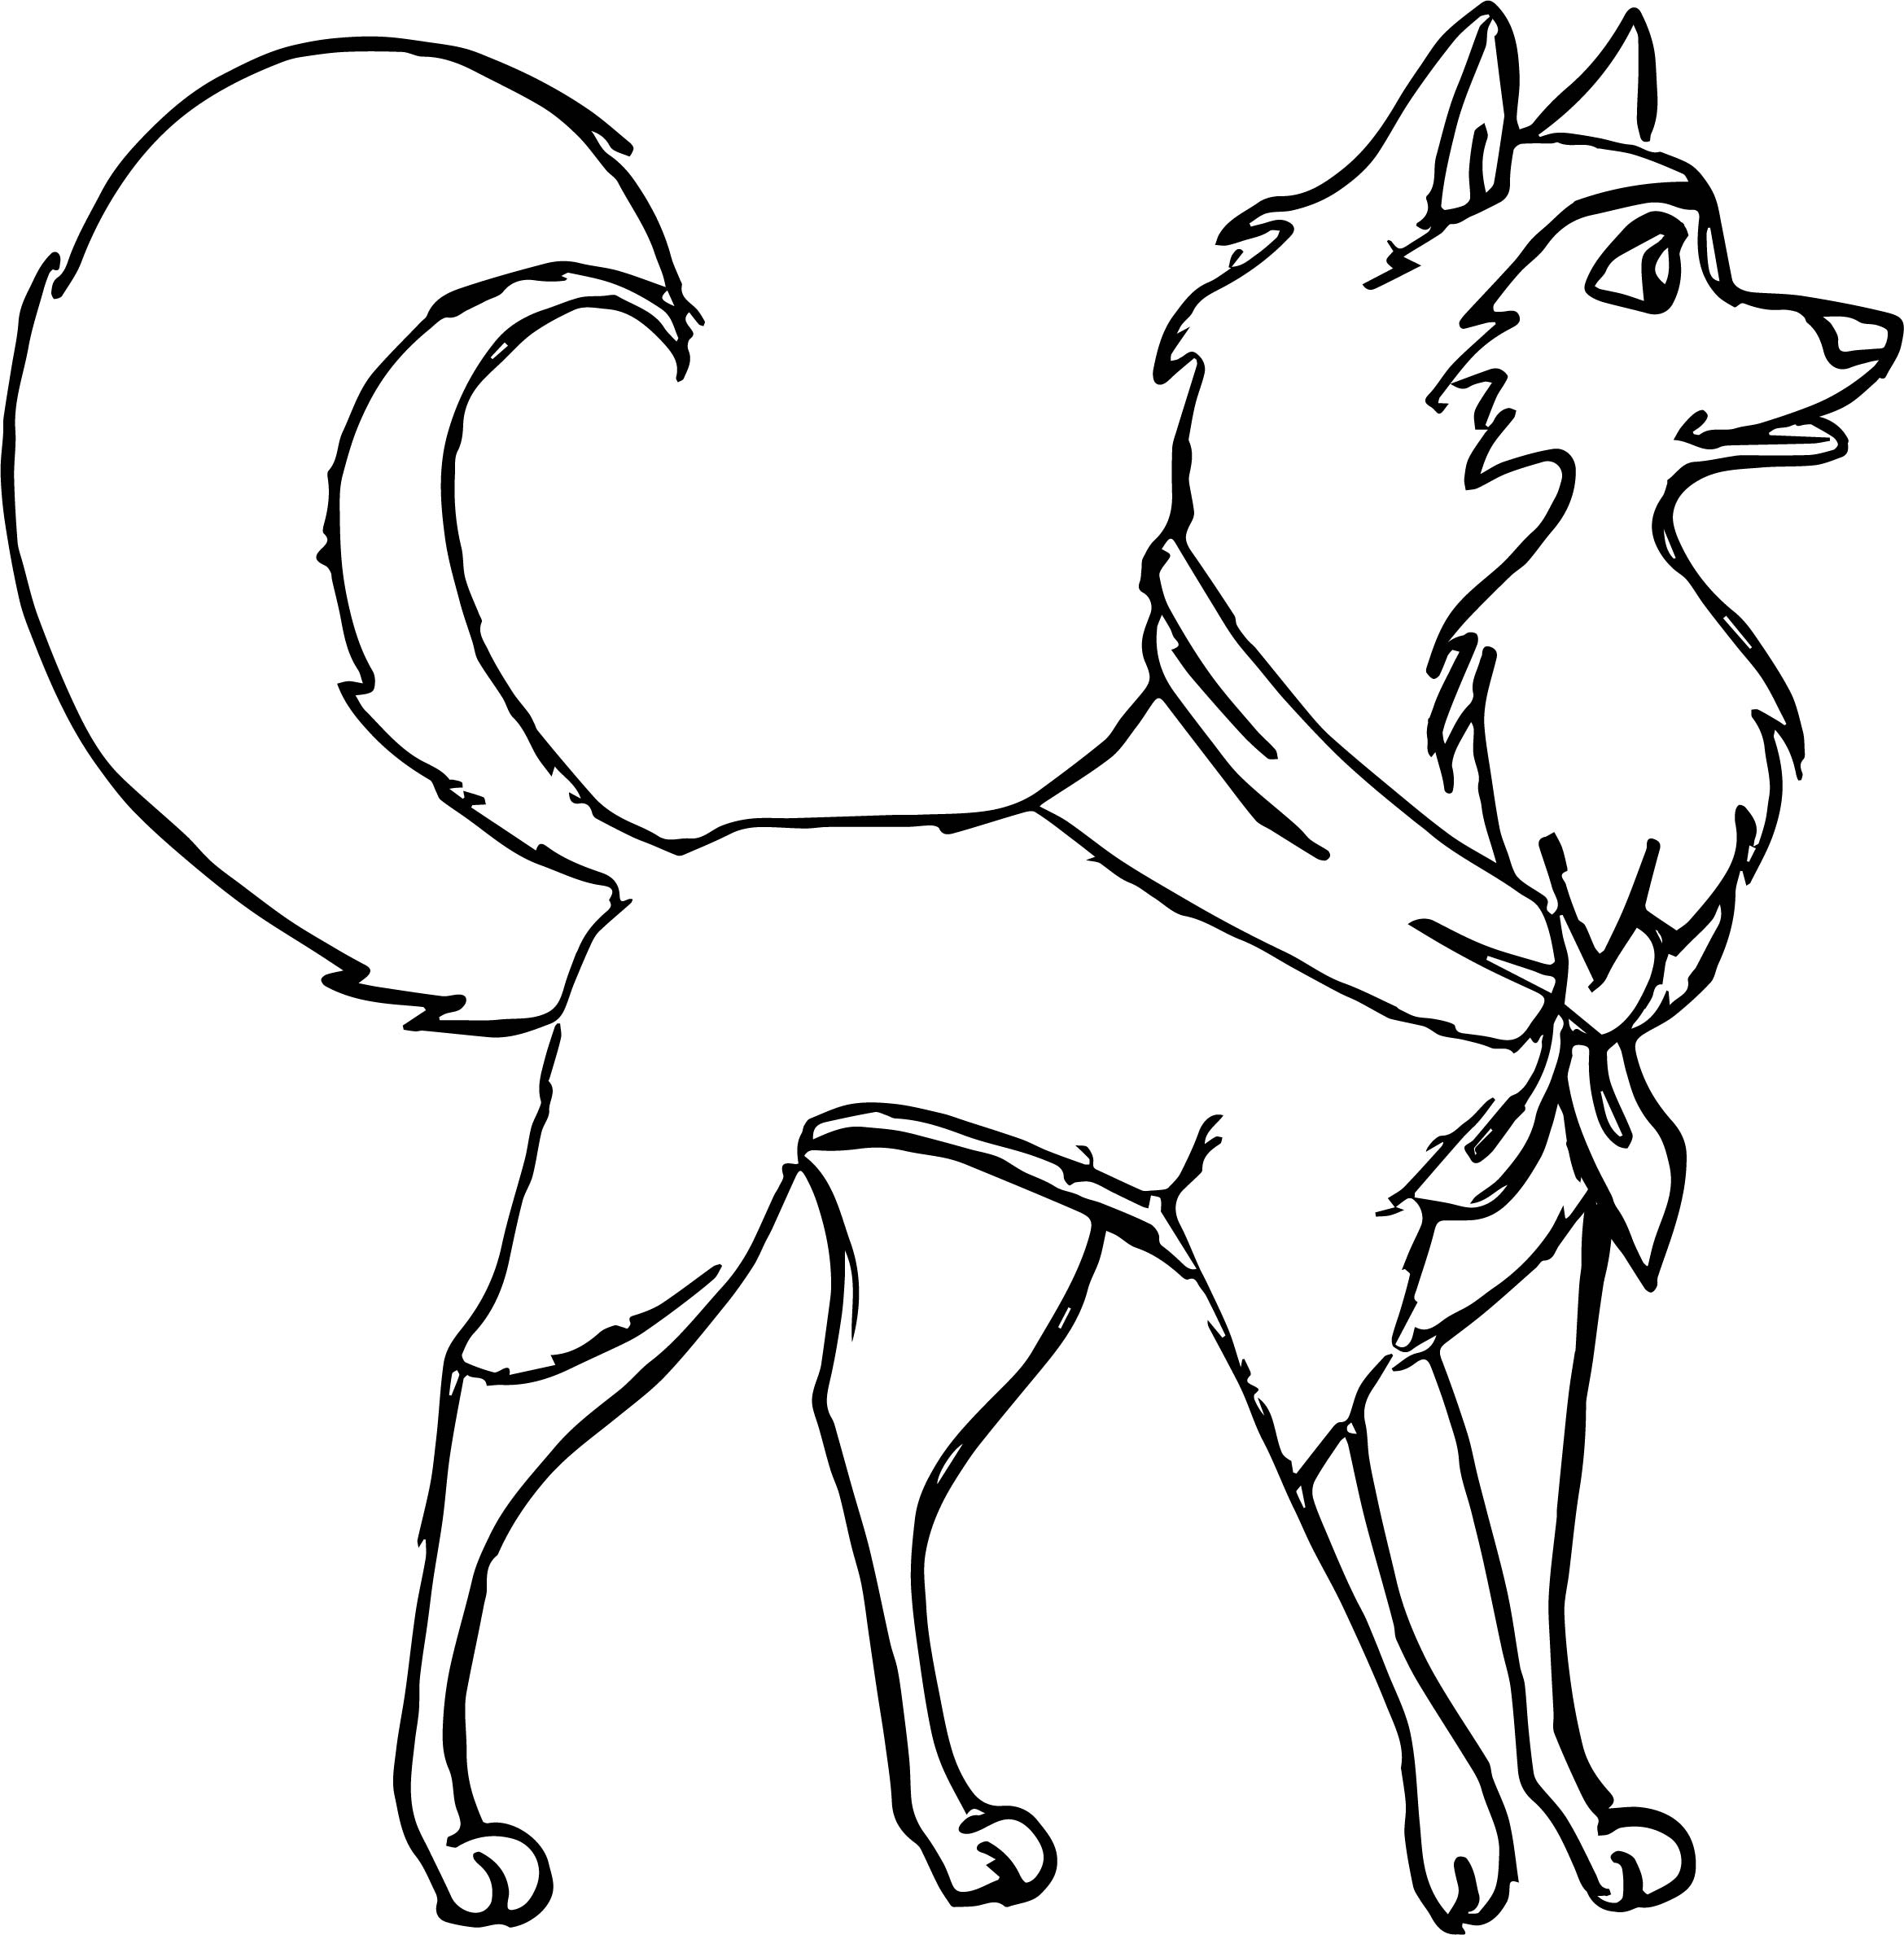 Balto And Jenna Coloring Pages At Getdrawings Com Free For